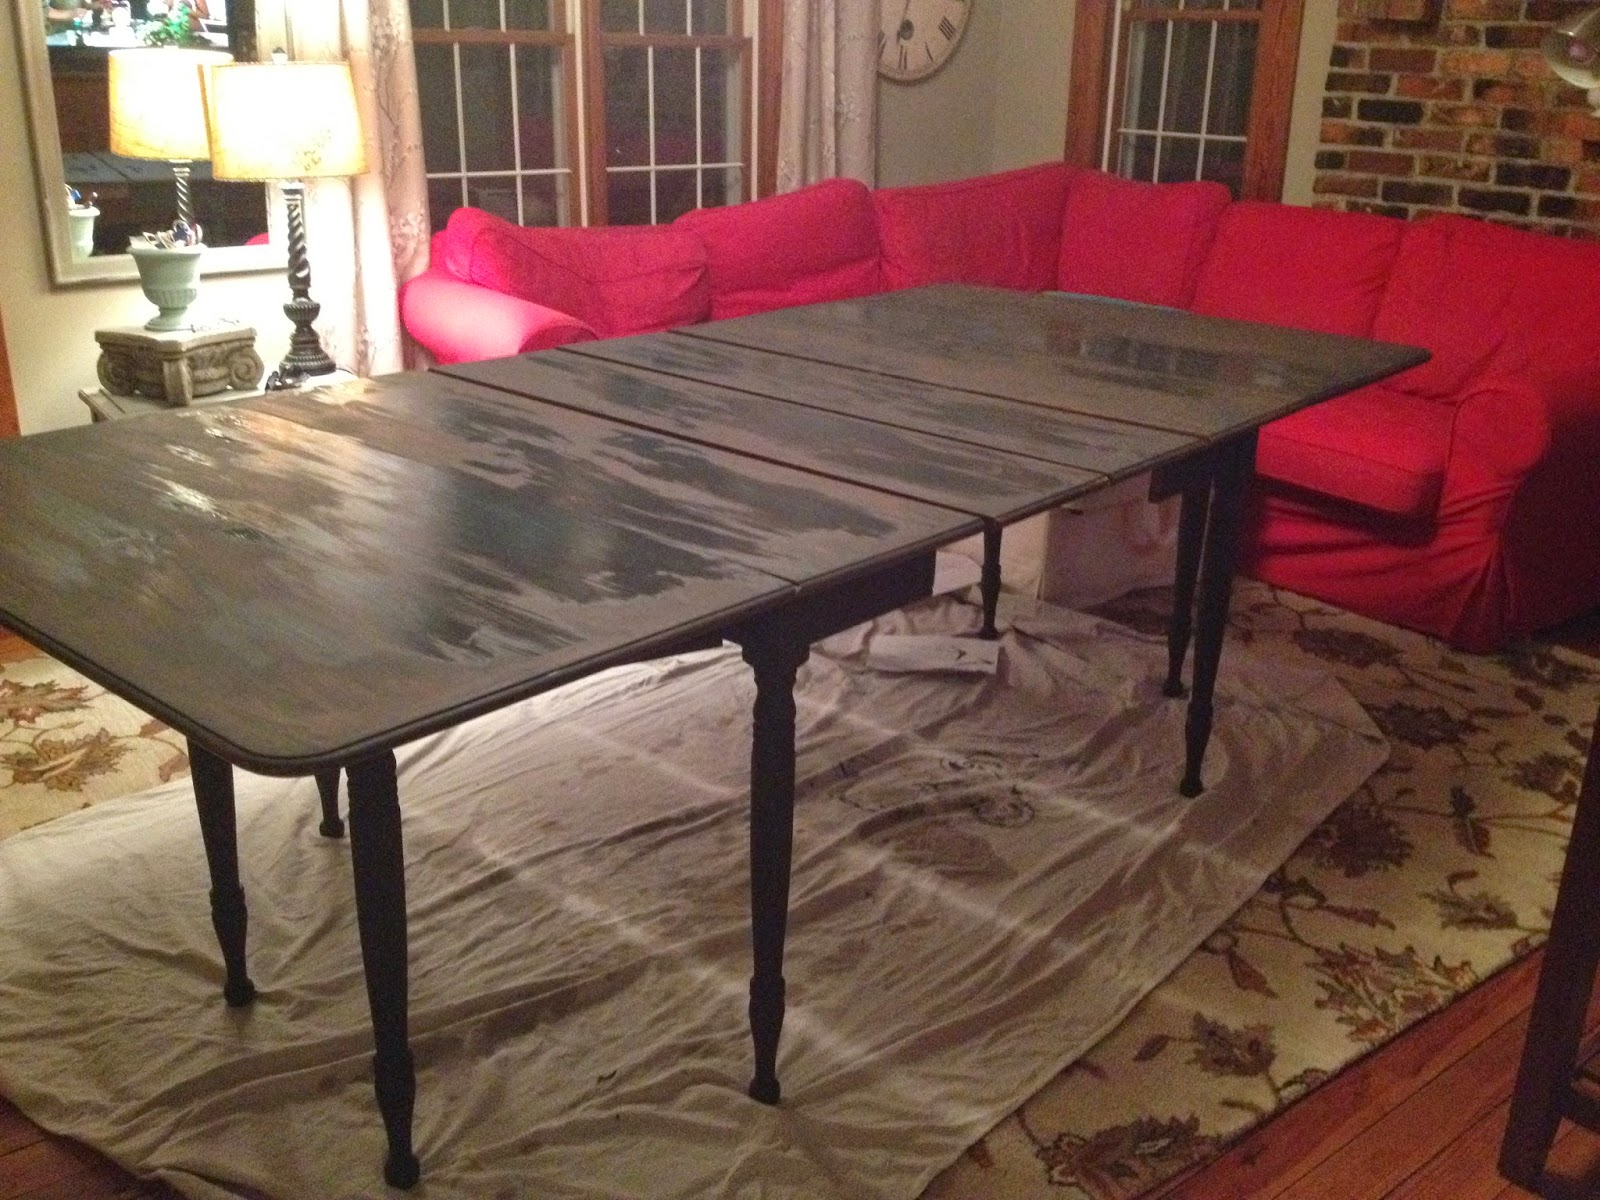 dining table redo redo kitchen table I flipped this large table numerous times to get the legs and apron painted